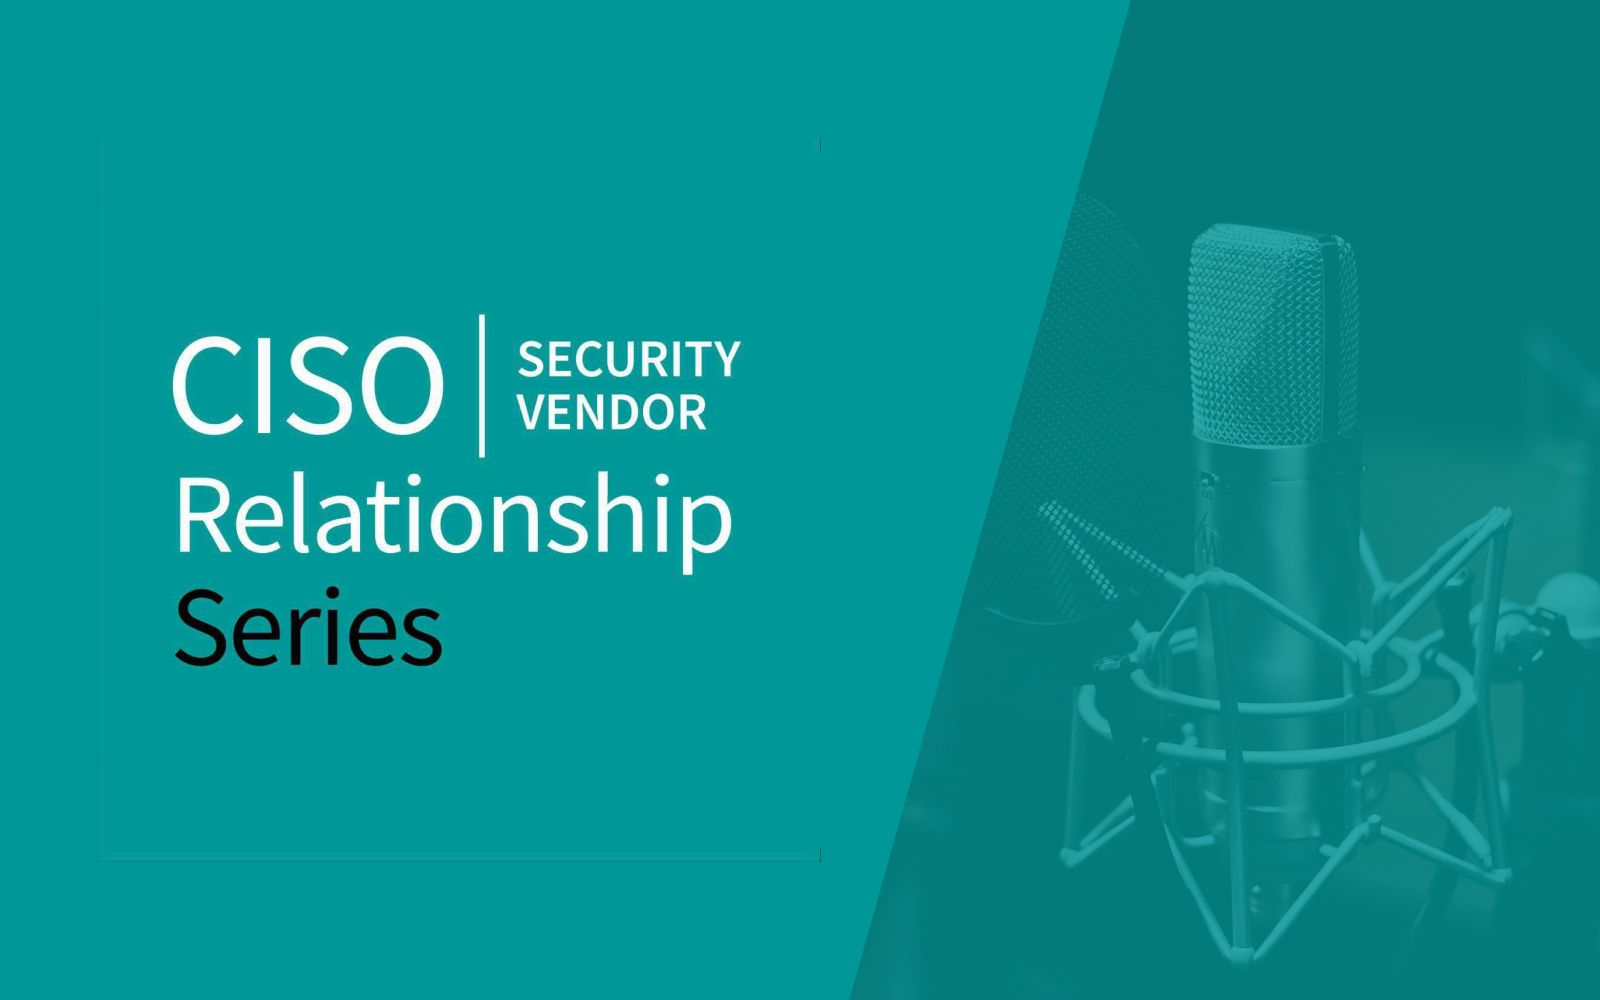 [PODCAST] CISO Series Defense in Depth: User-Centric Security